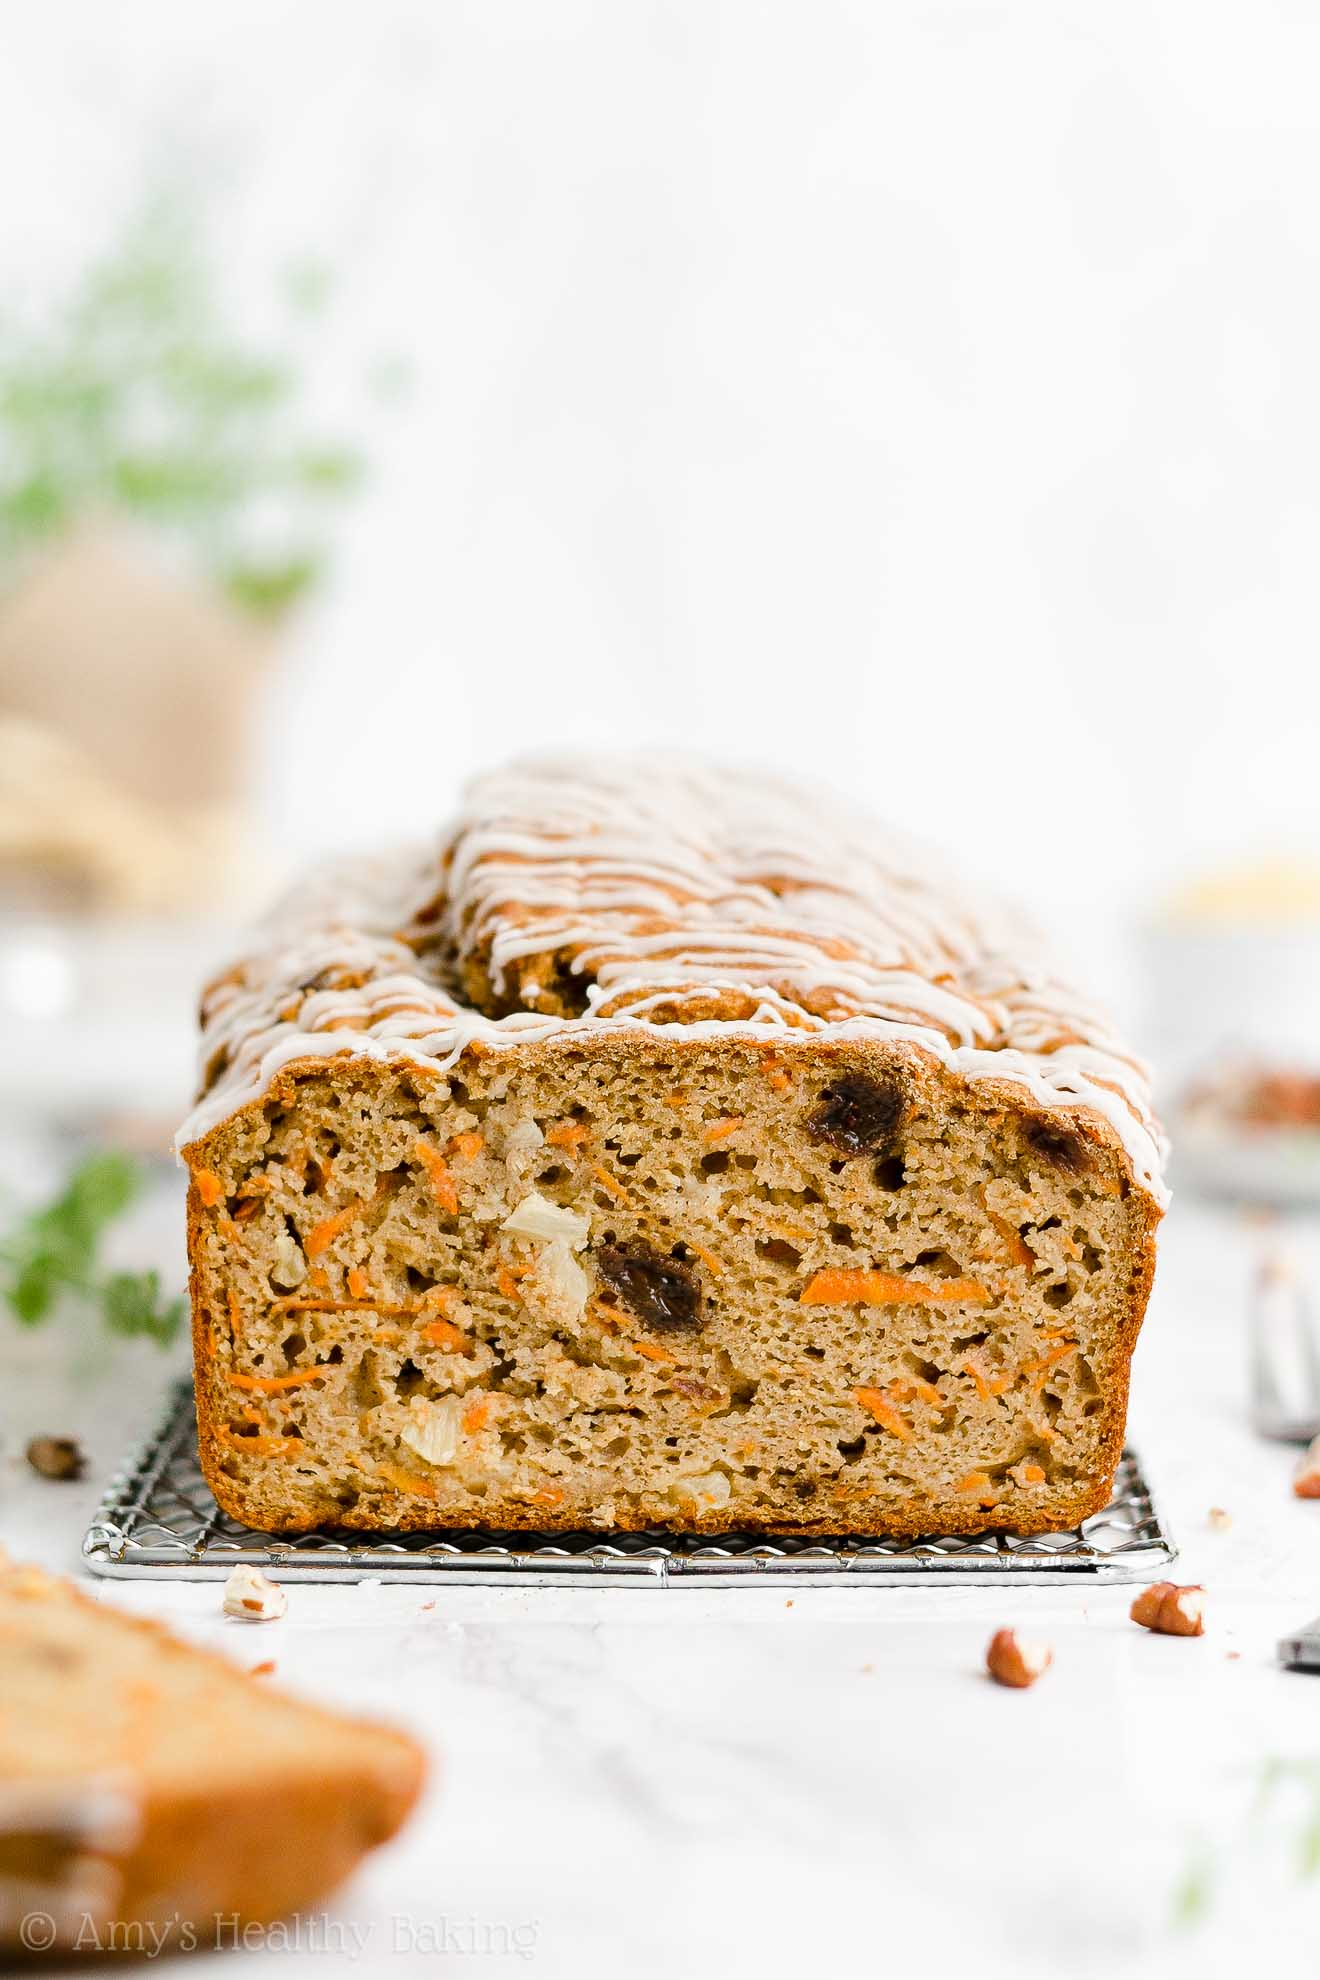 Best Easy Healthy Gluten Free Low Sugar Moist Pineapple Raisin Carrot Pound Cake